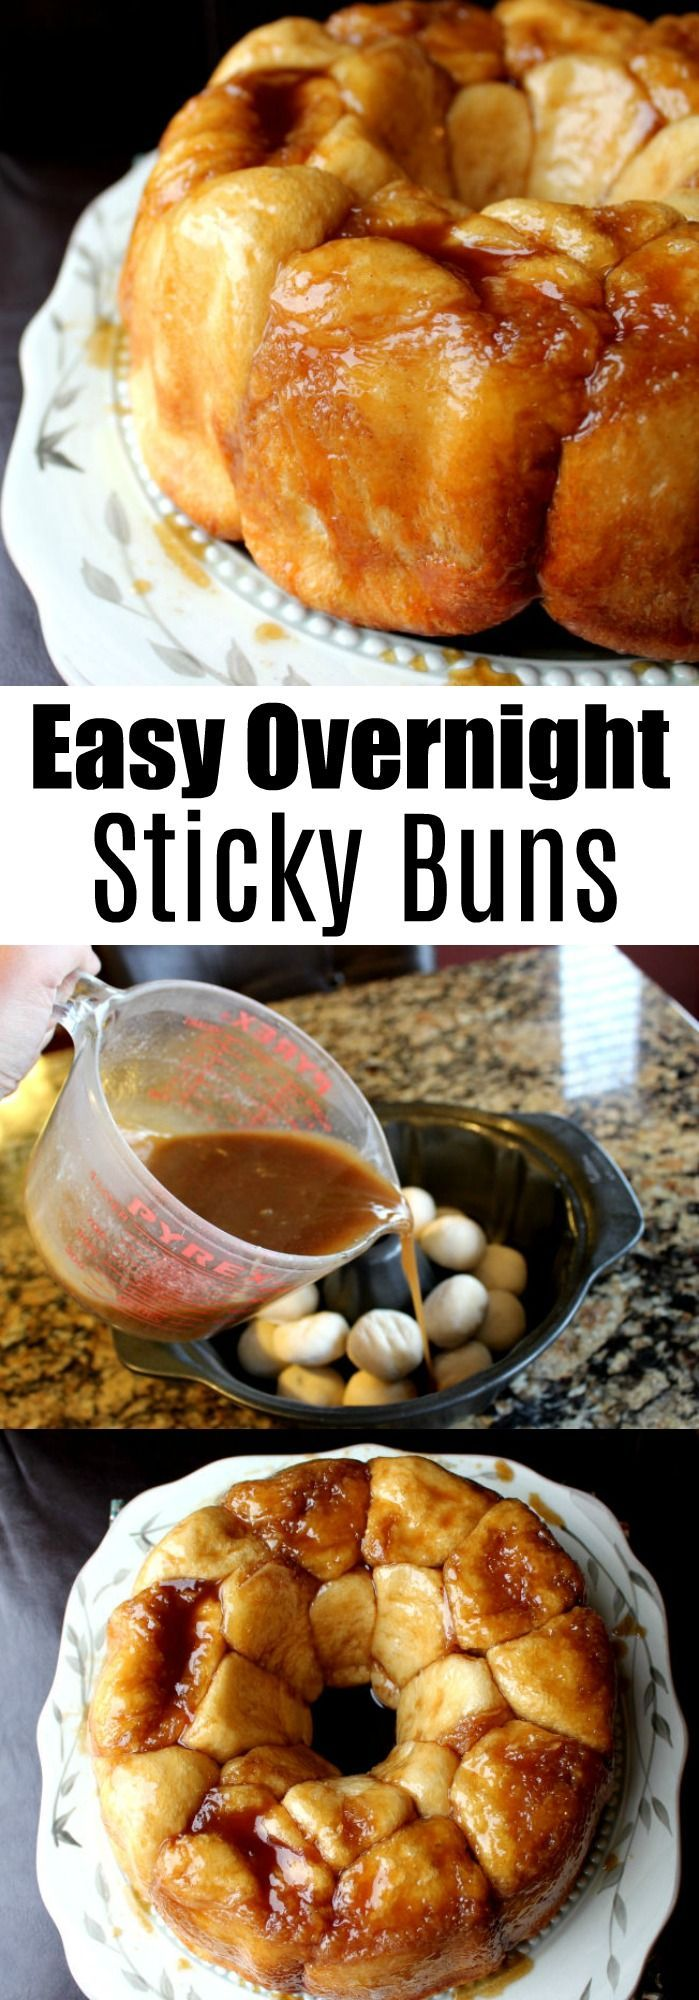 Easy Overnight Cinnamon Sticky Buns images